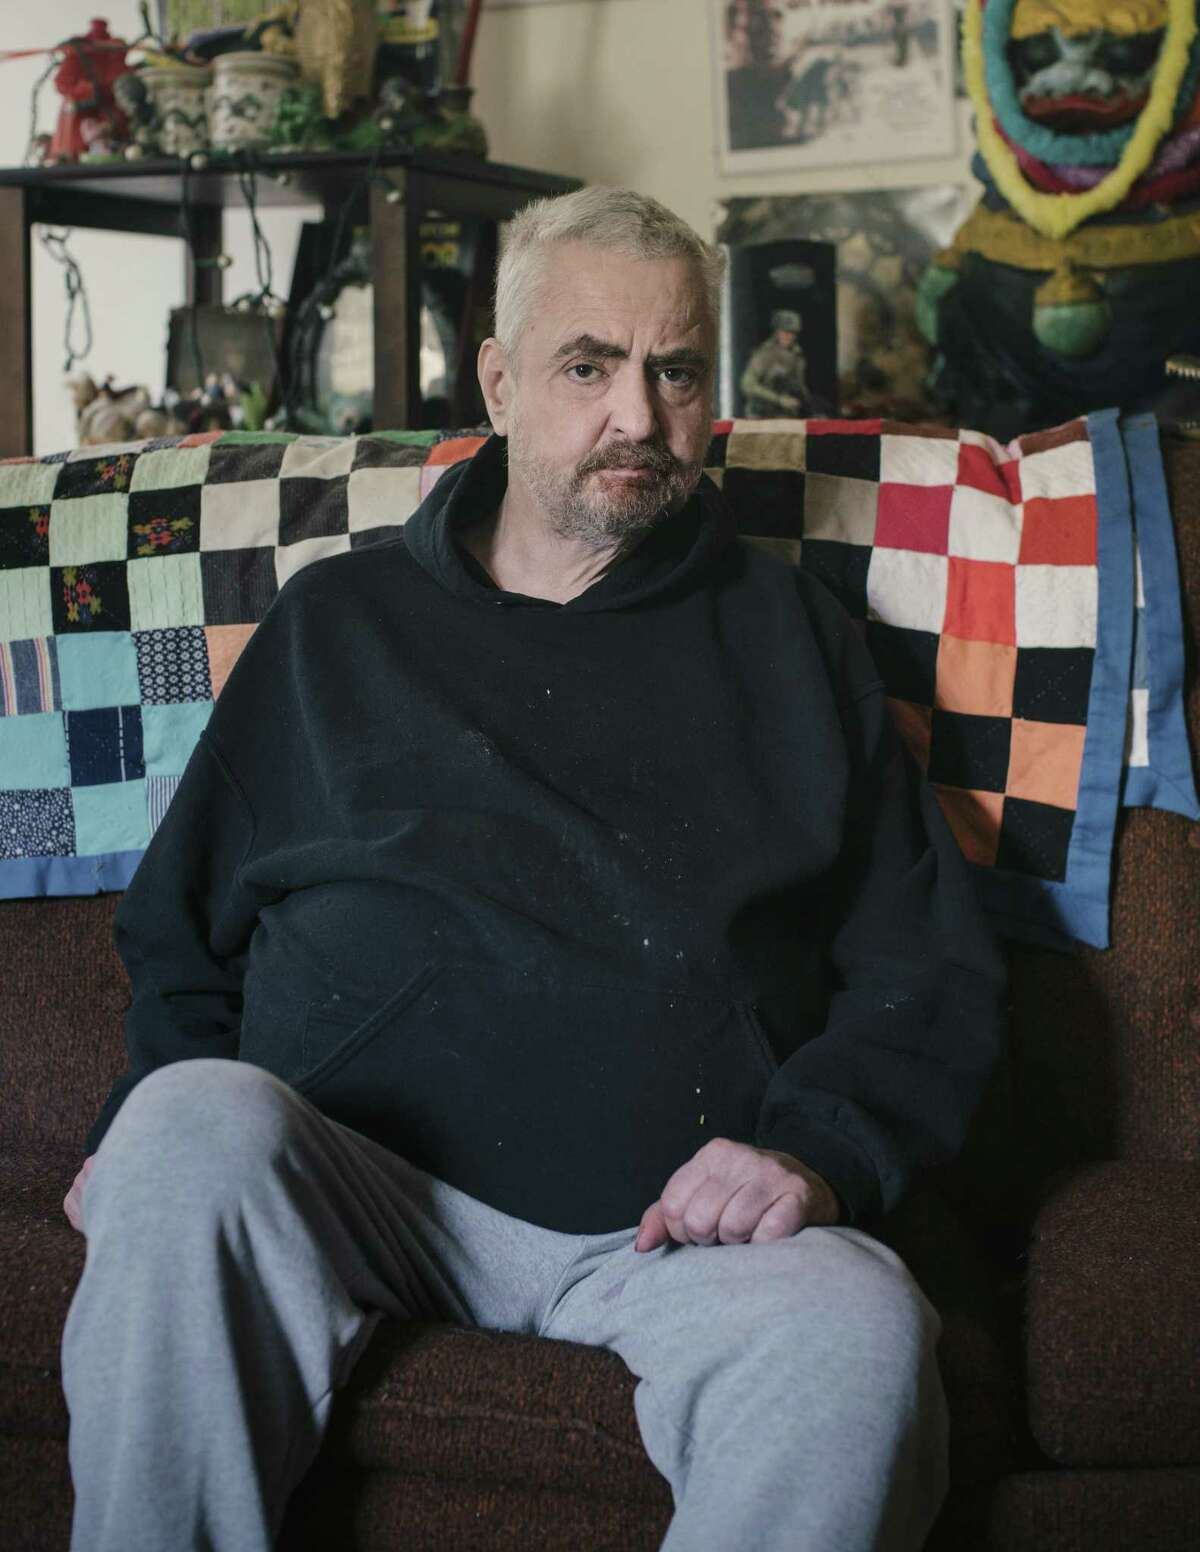 Daniel Johnston, a singer-songwriter, at home in Waller, Texas, Sept. 26, 2017. Johnston has battled manic depression and schizophrenia most of his adult life, and in recent years endured multiple physical ailments, including diabetes, a kidney infection and hydrocephalus, but will soon go on tour that some have billed as his last. (Bryan Schutmaat/The New York Times)